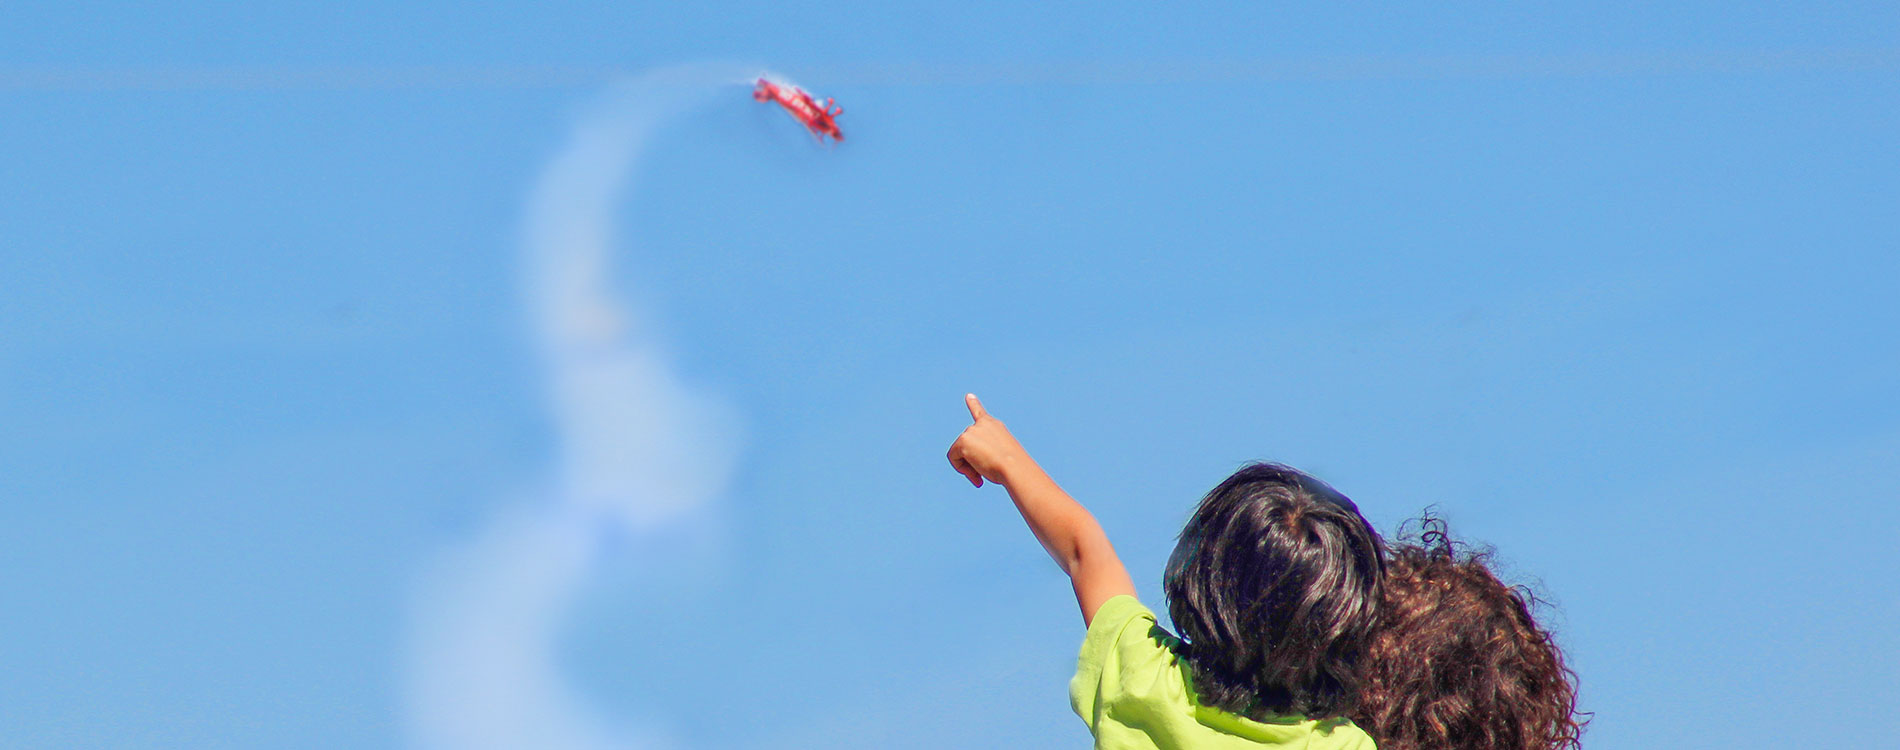 Two kids pointing to a plane in the sky